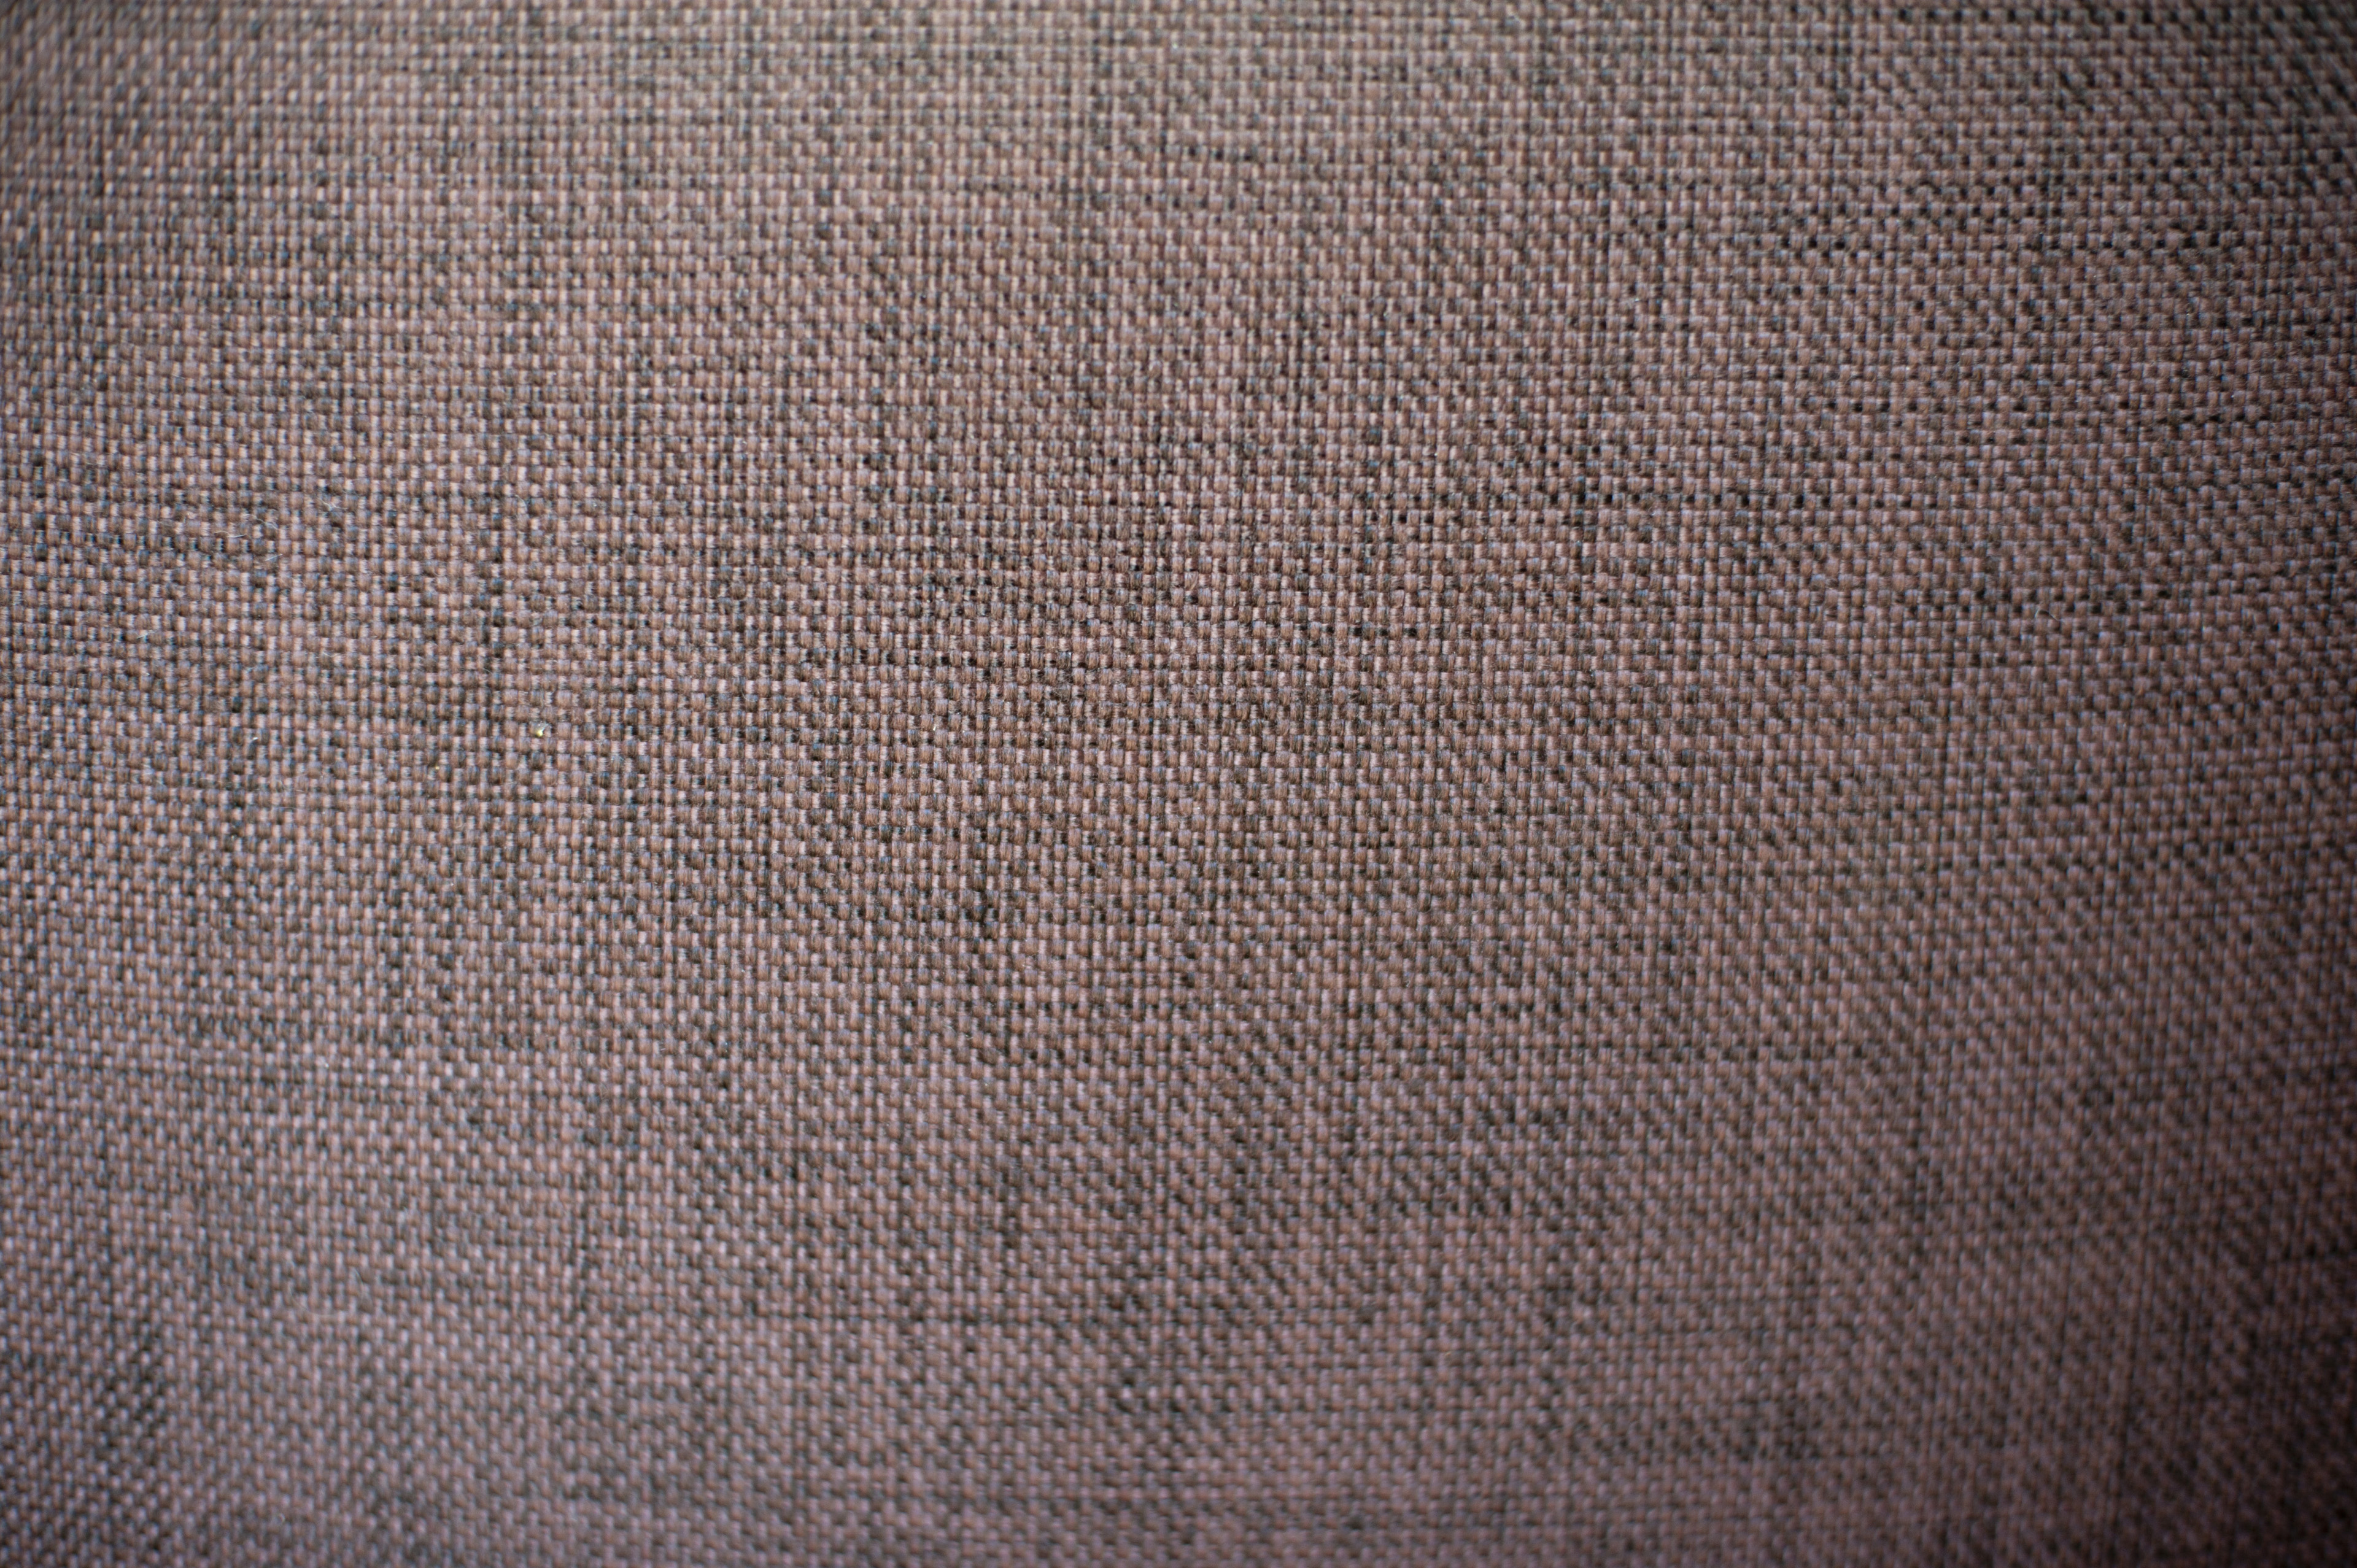 woven textile background texture in muted purple